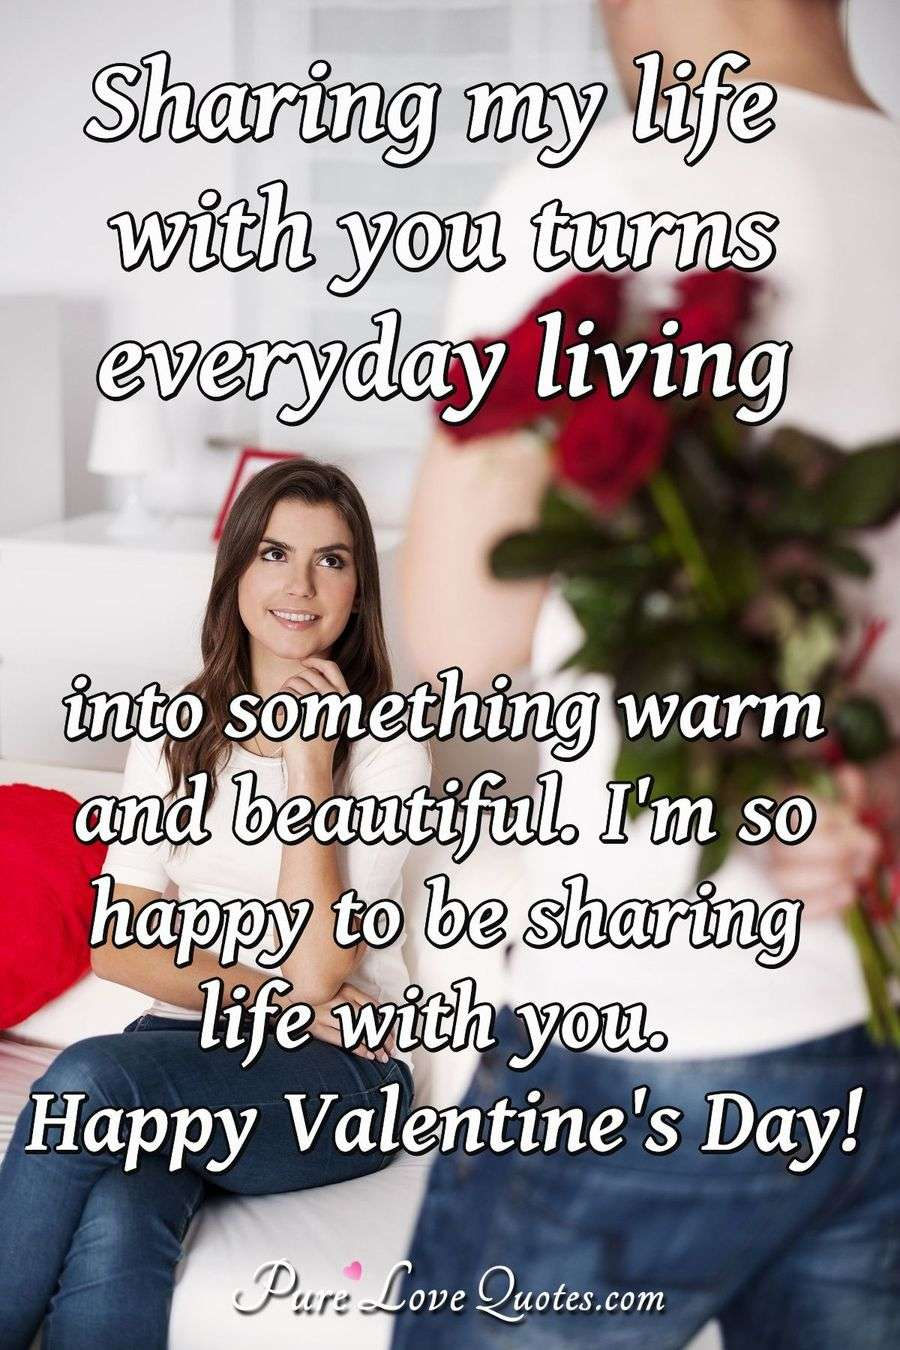 Sharing My Life With You Turns Everyday Living Into Something Warm